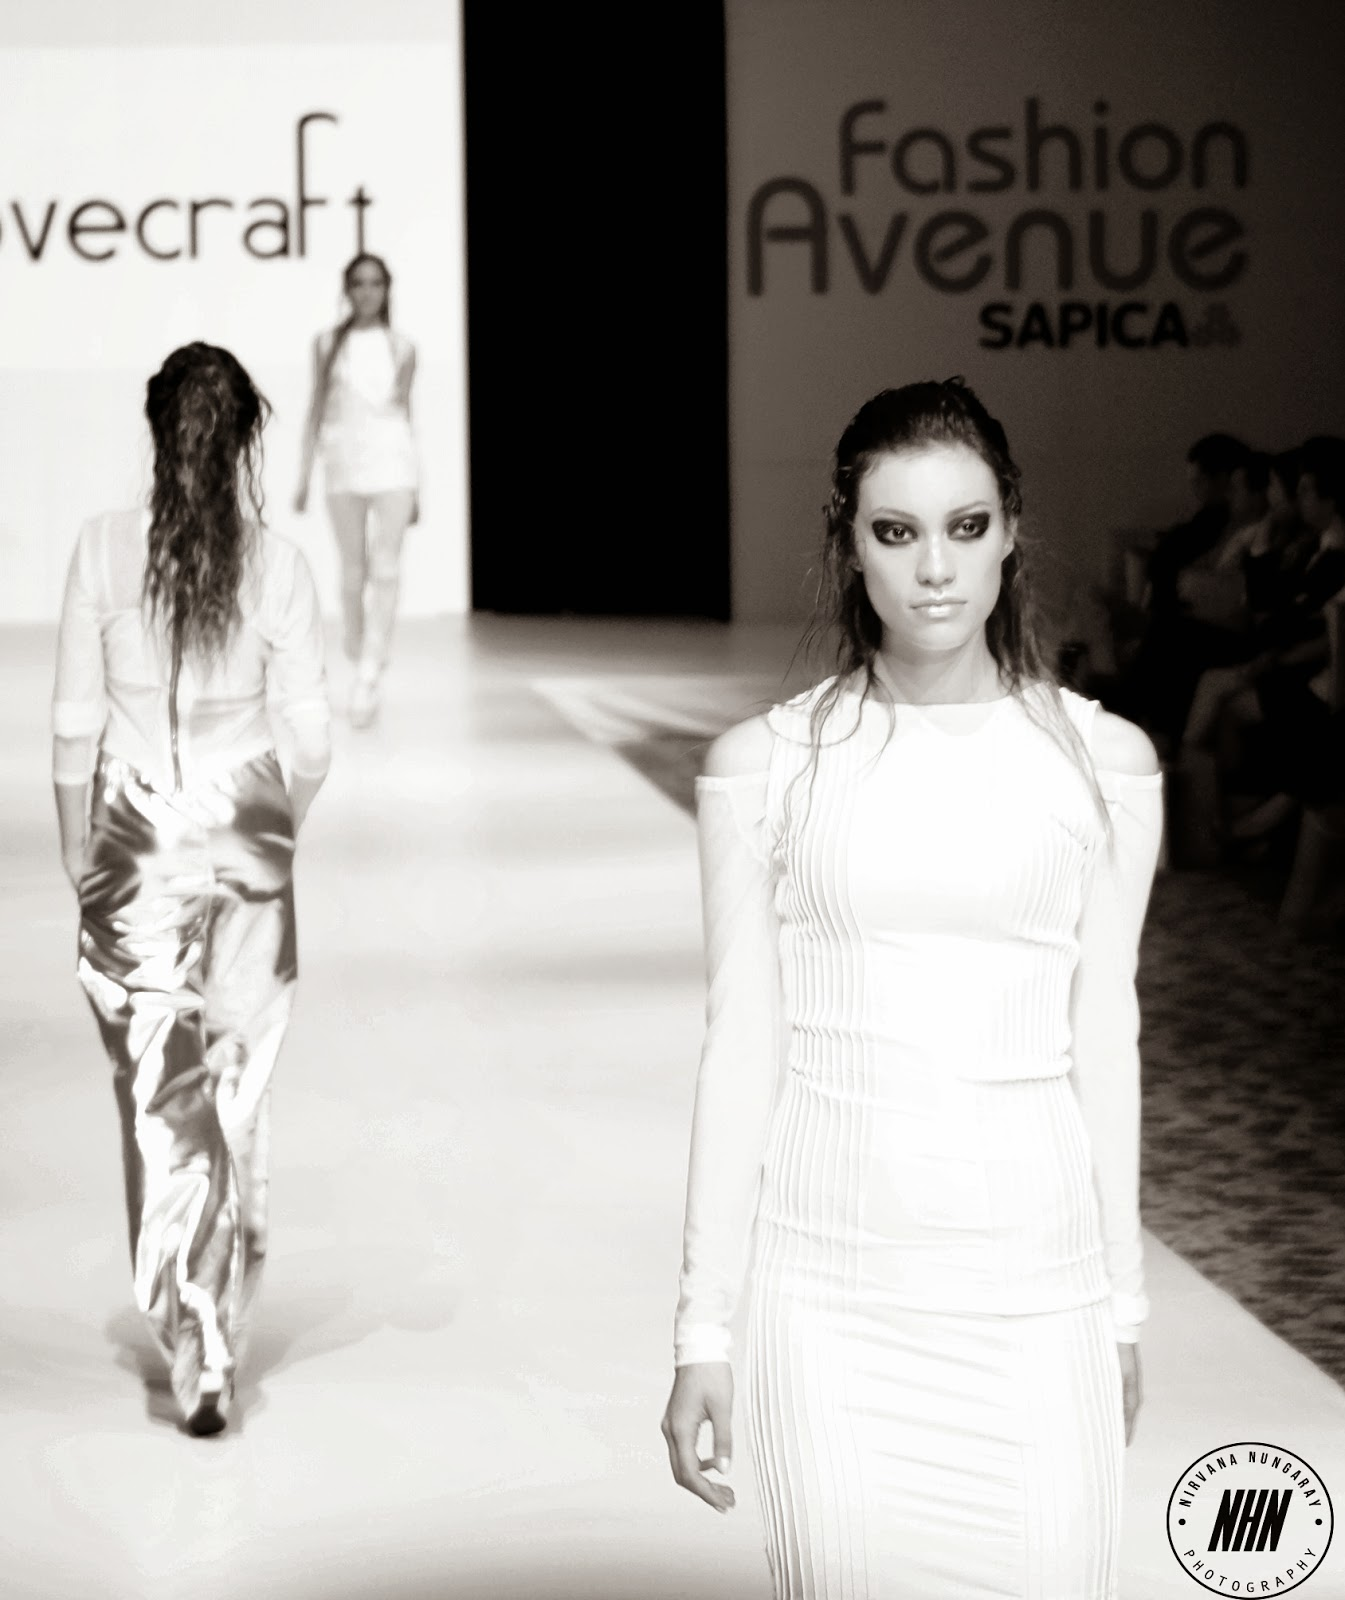 sapica, backstage, fashion avenue, paulina lovecraft, nirvana nungaray photography, pasarela, calzado oveja, diseño mexicano.